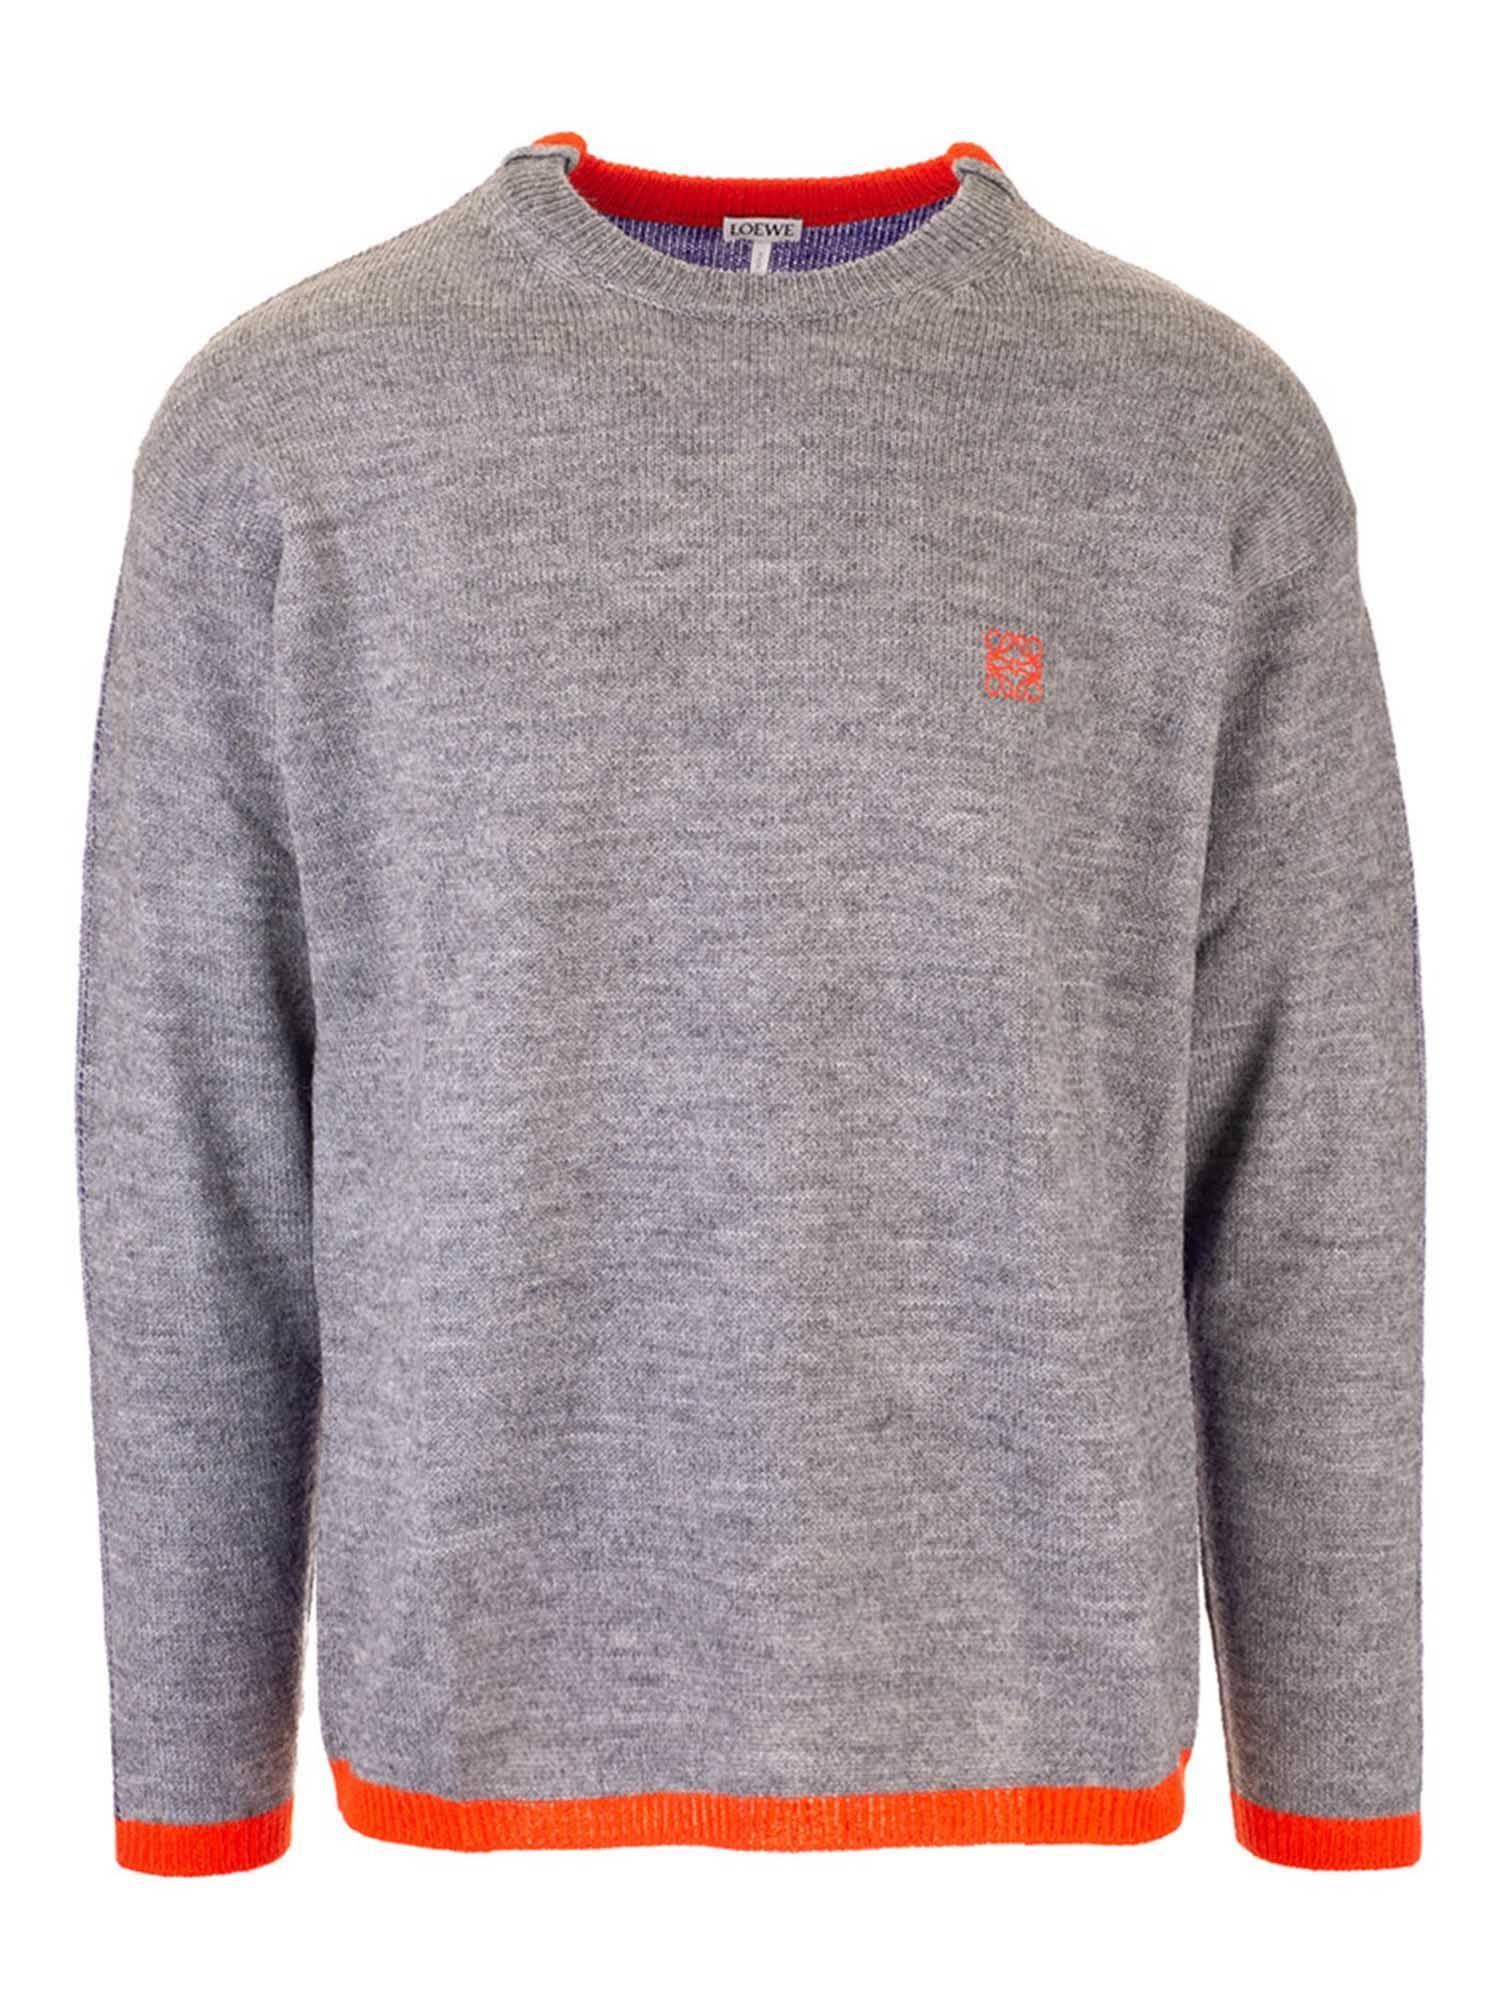 Loewe CREW-NECK PULLOVER IN GREY AND BLUE